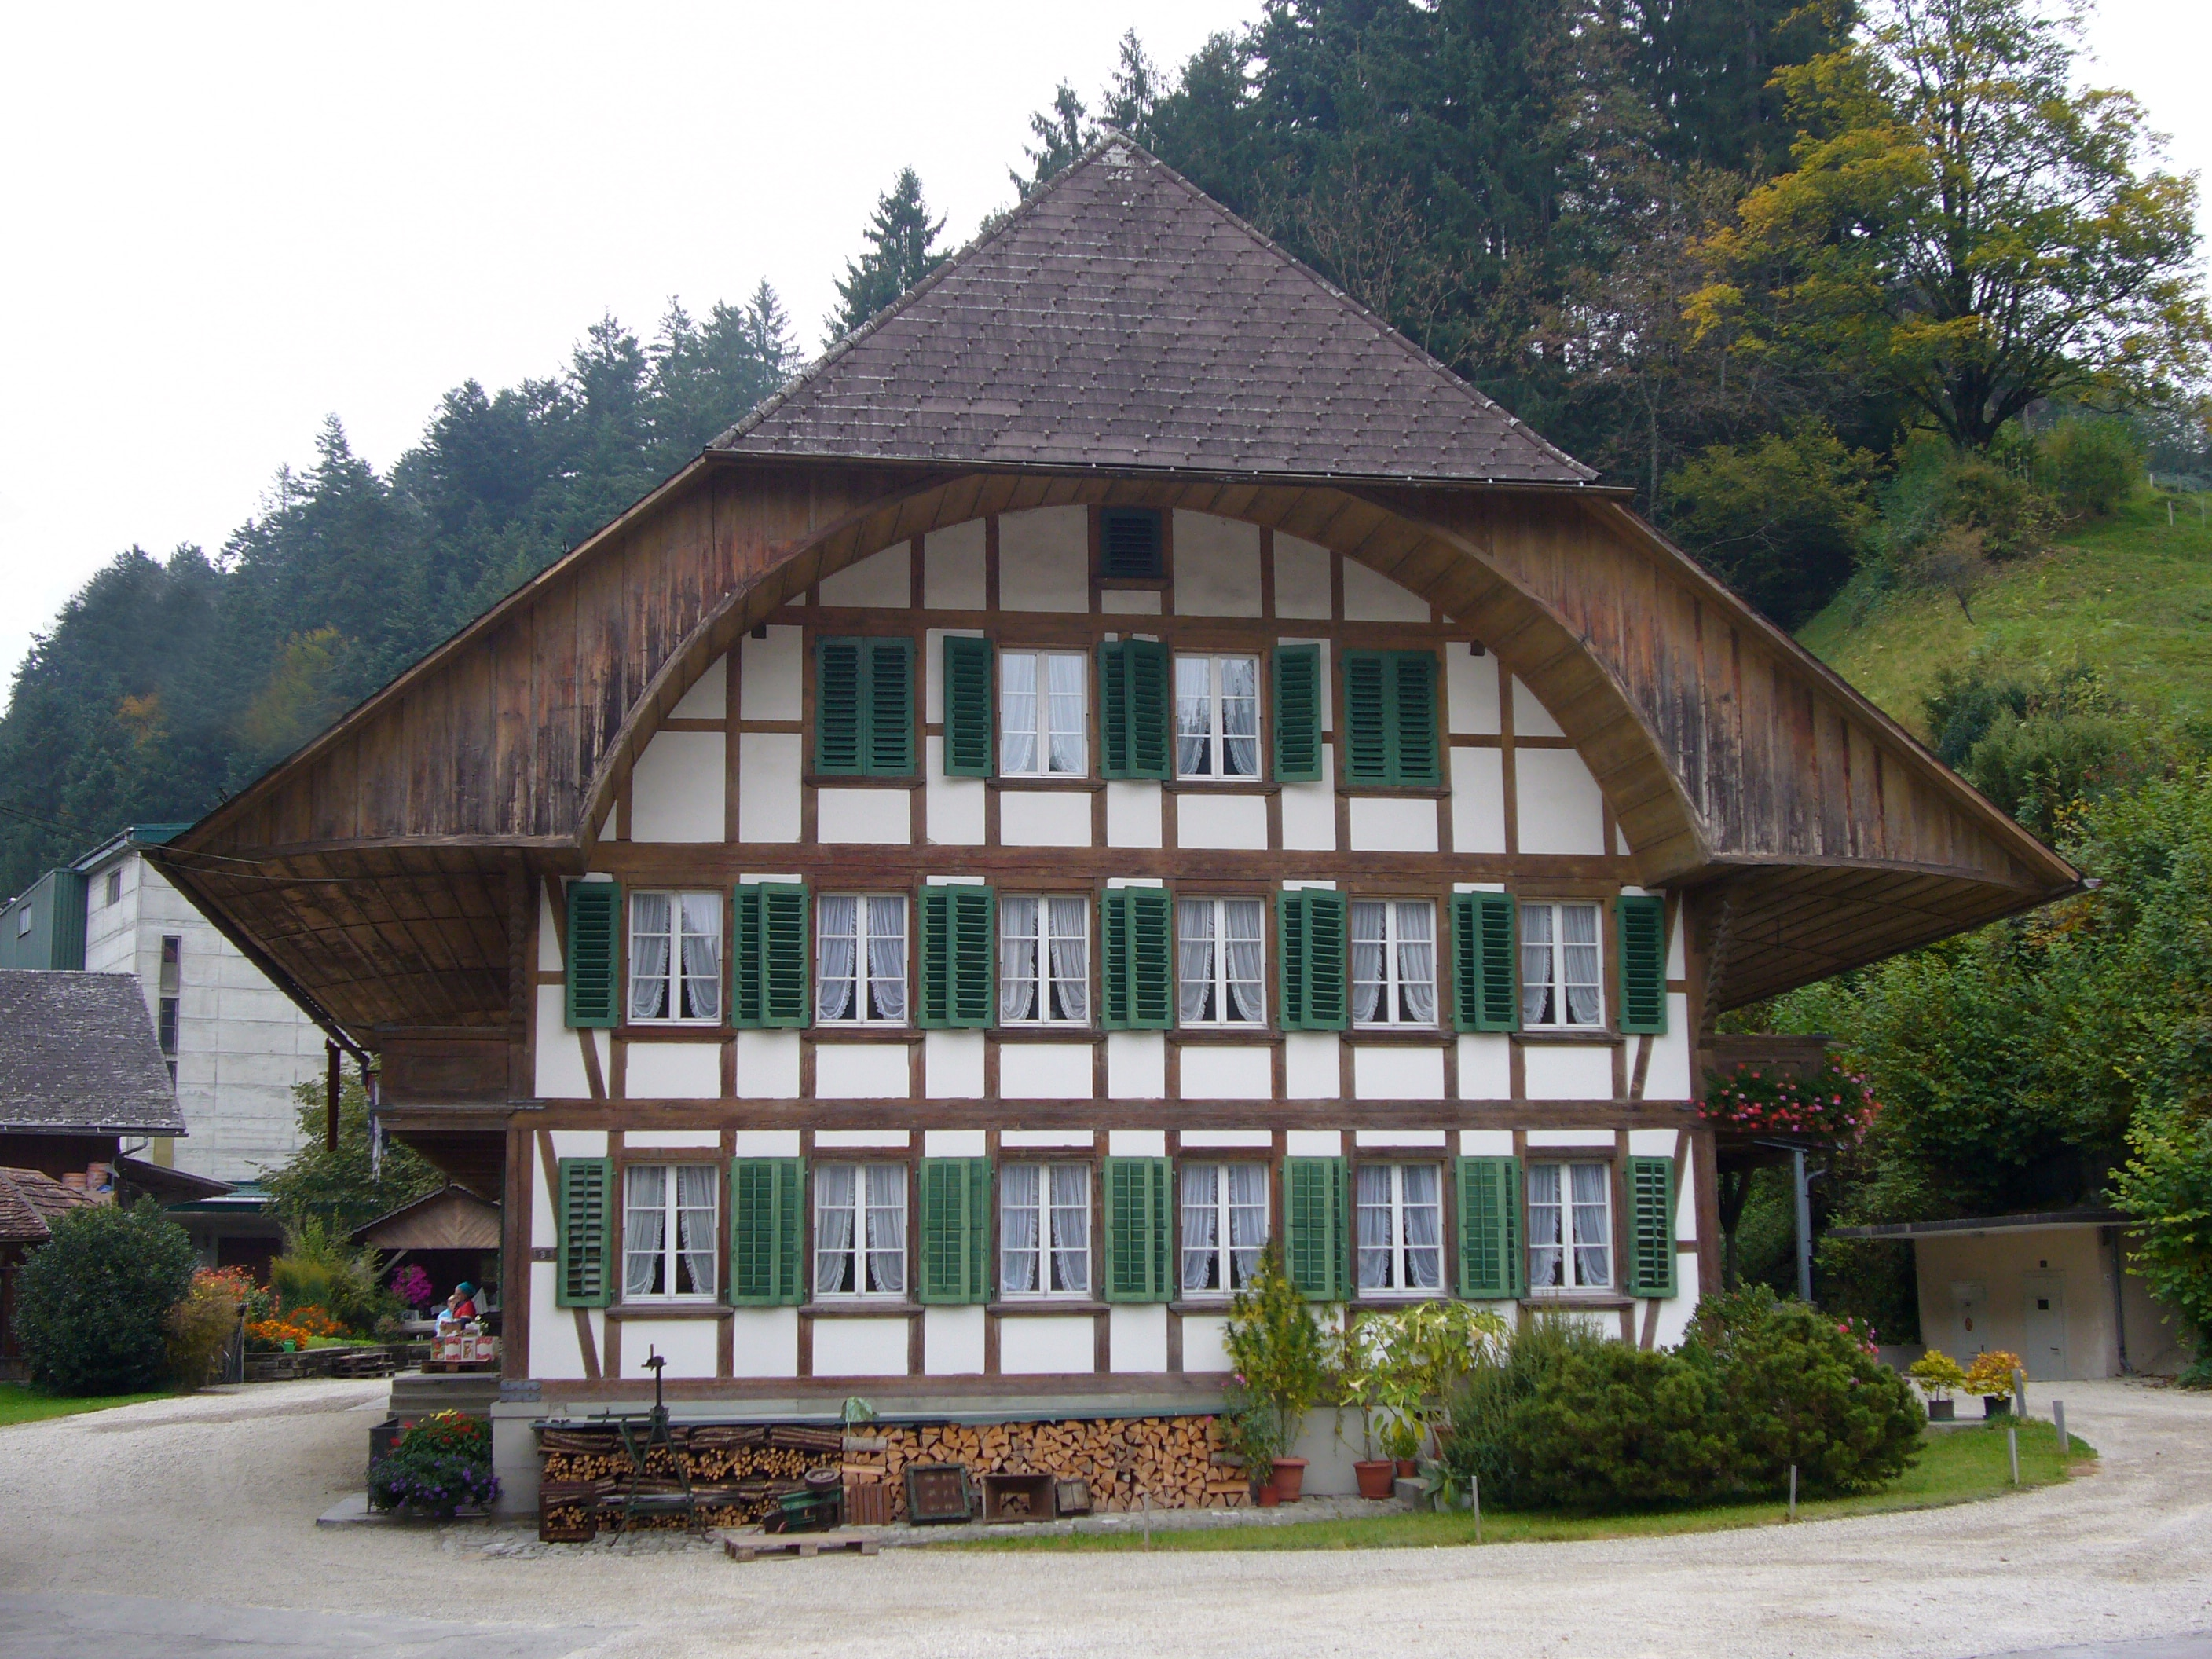 A typical Emmental house in the village of Trubschachen (Robert Brookes)